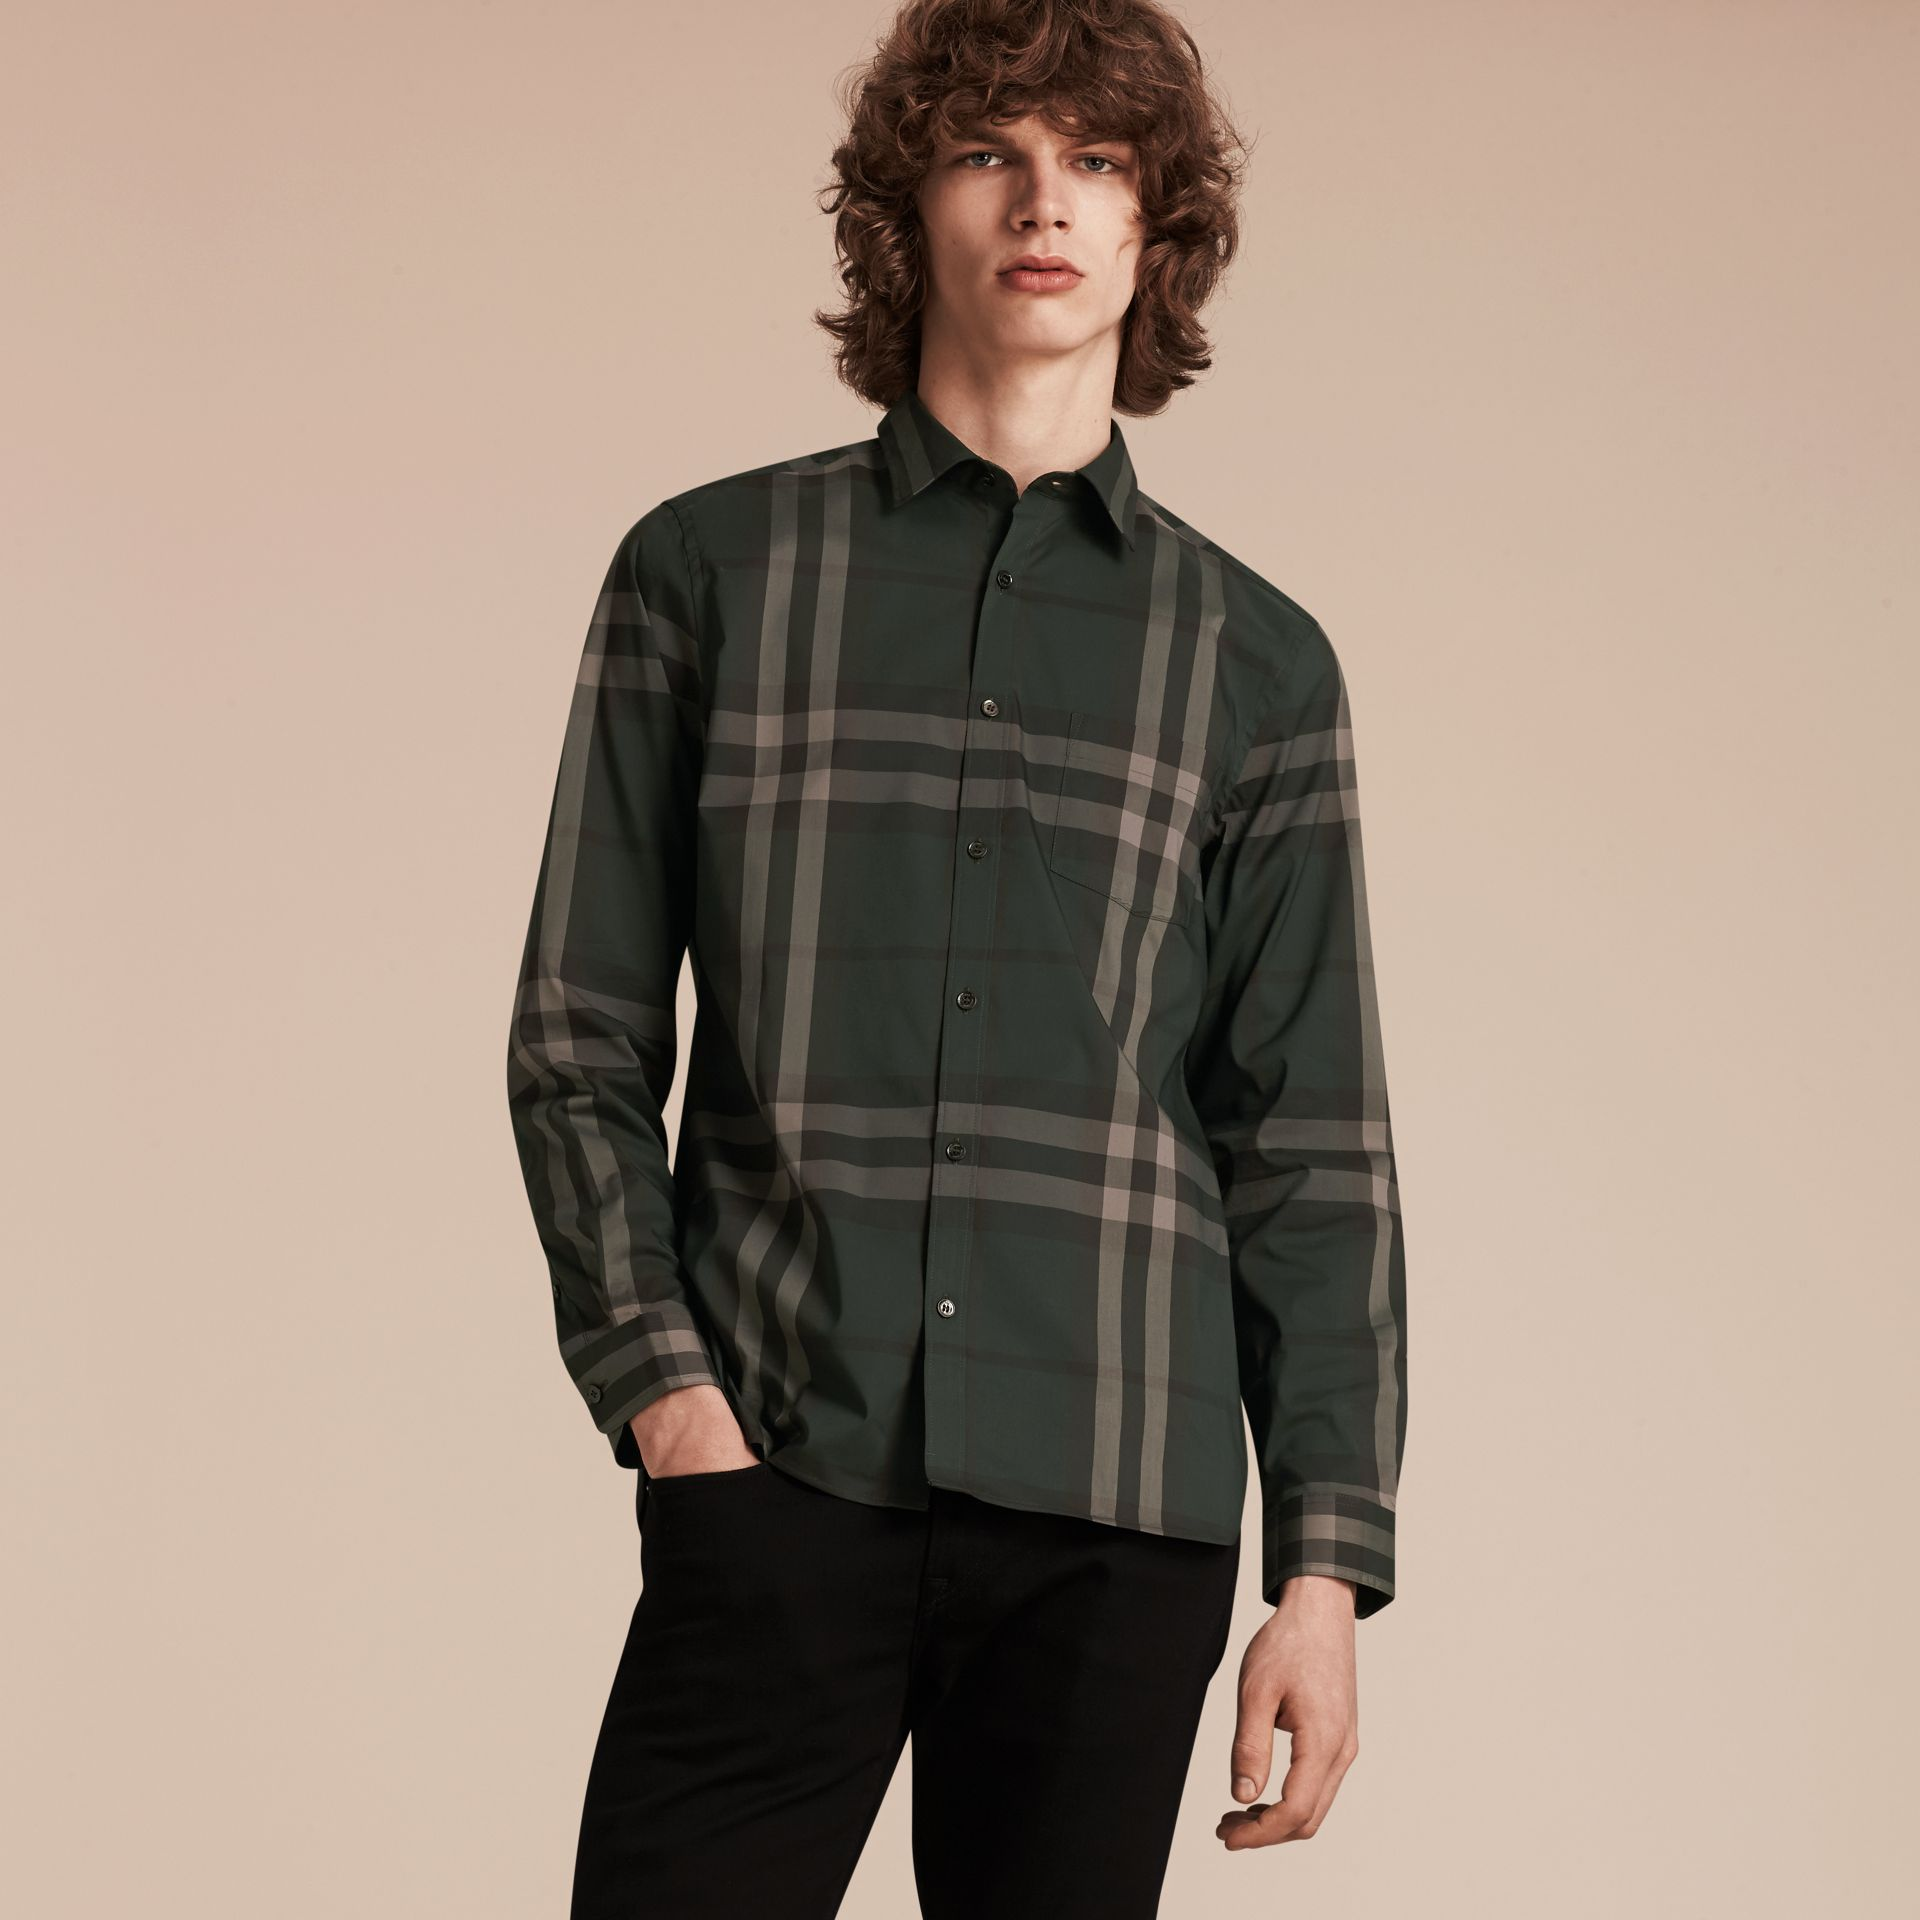 Racing green Check Stretch Cotton Shirt Racing Green - gallery image 6